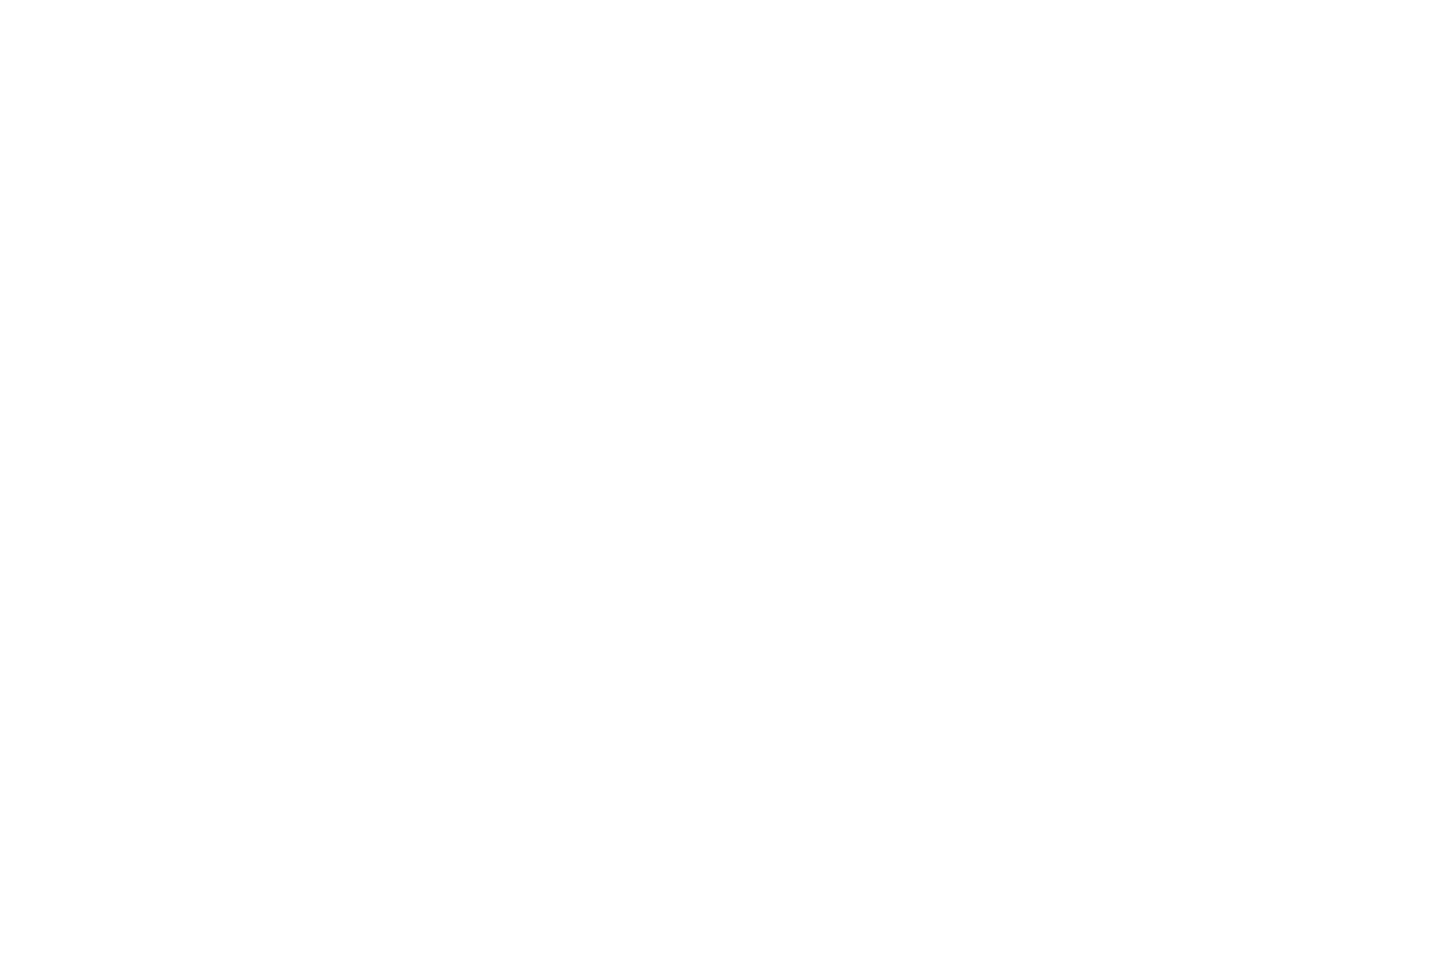 We made a name for ourselves